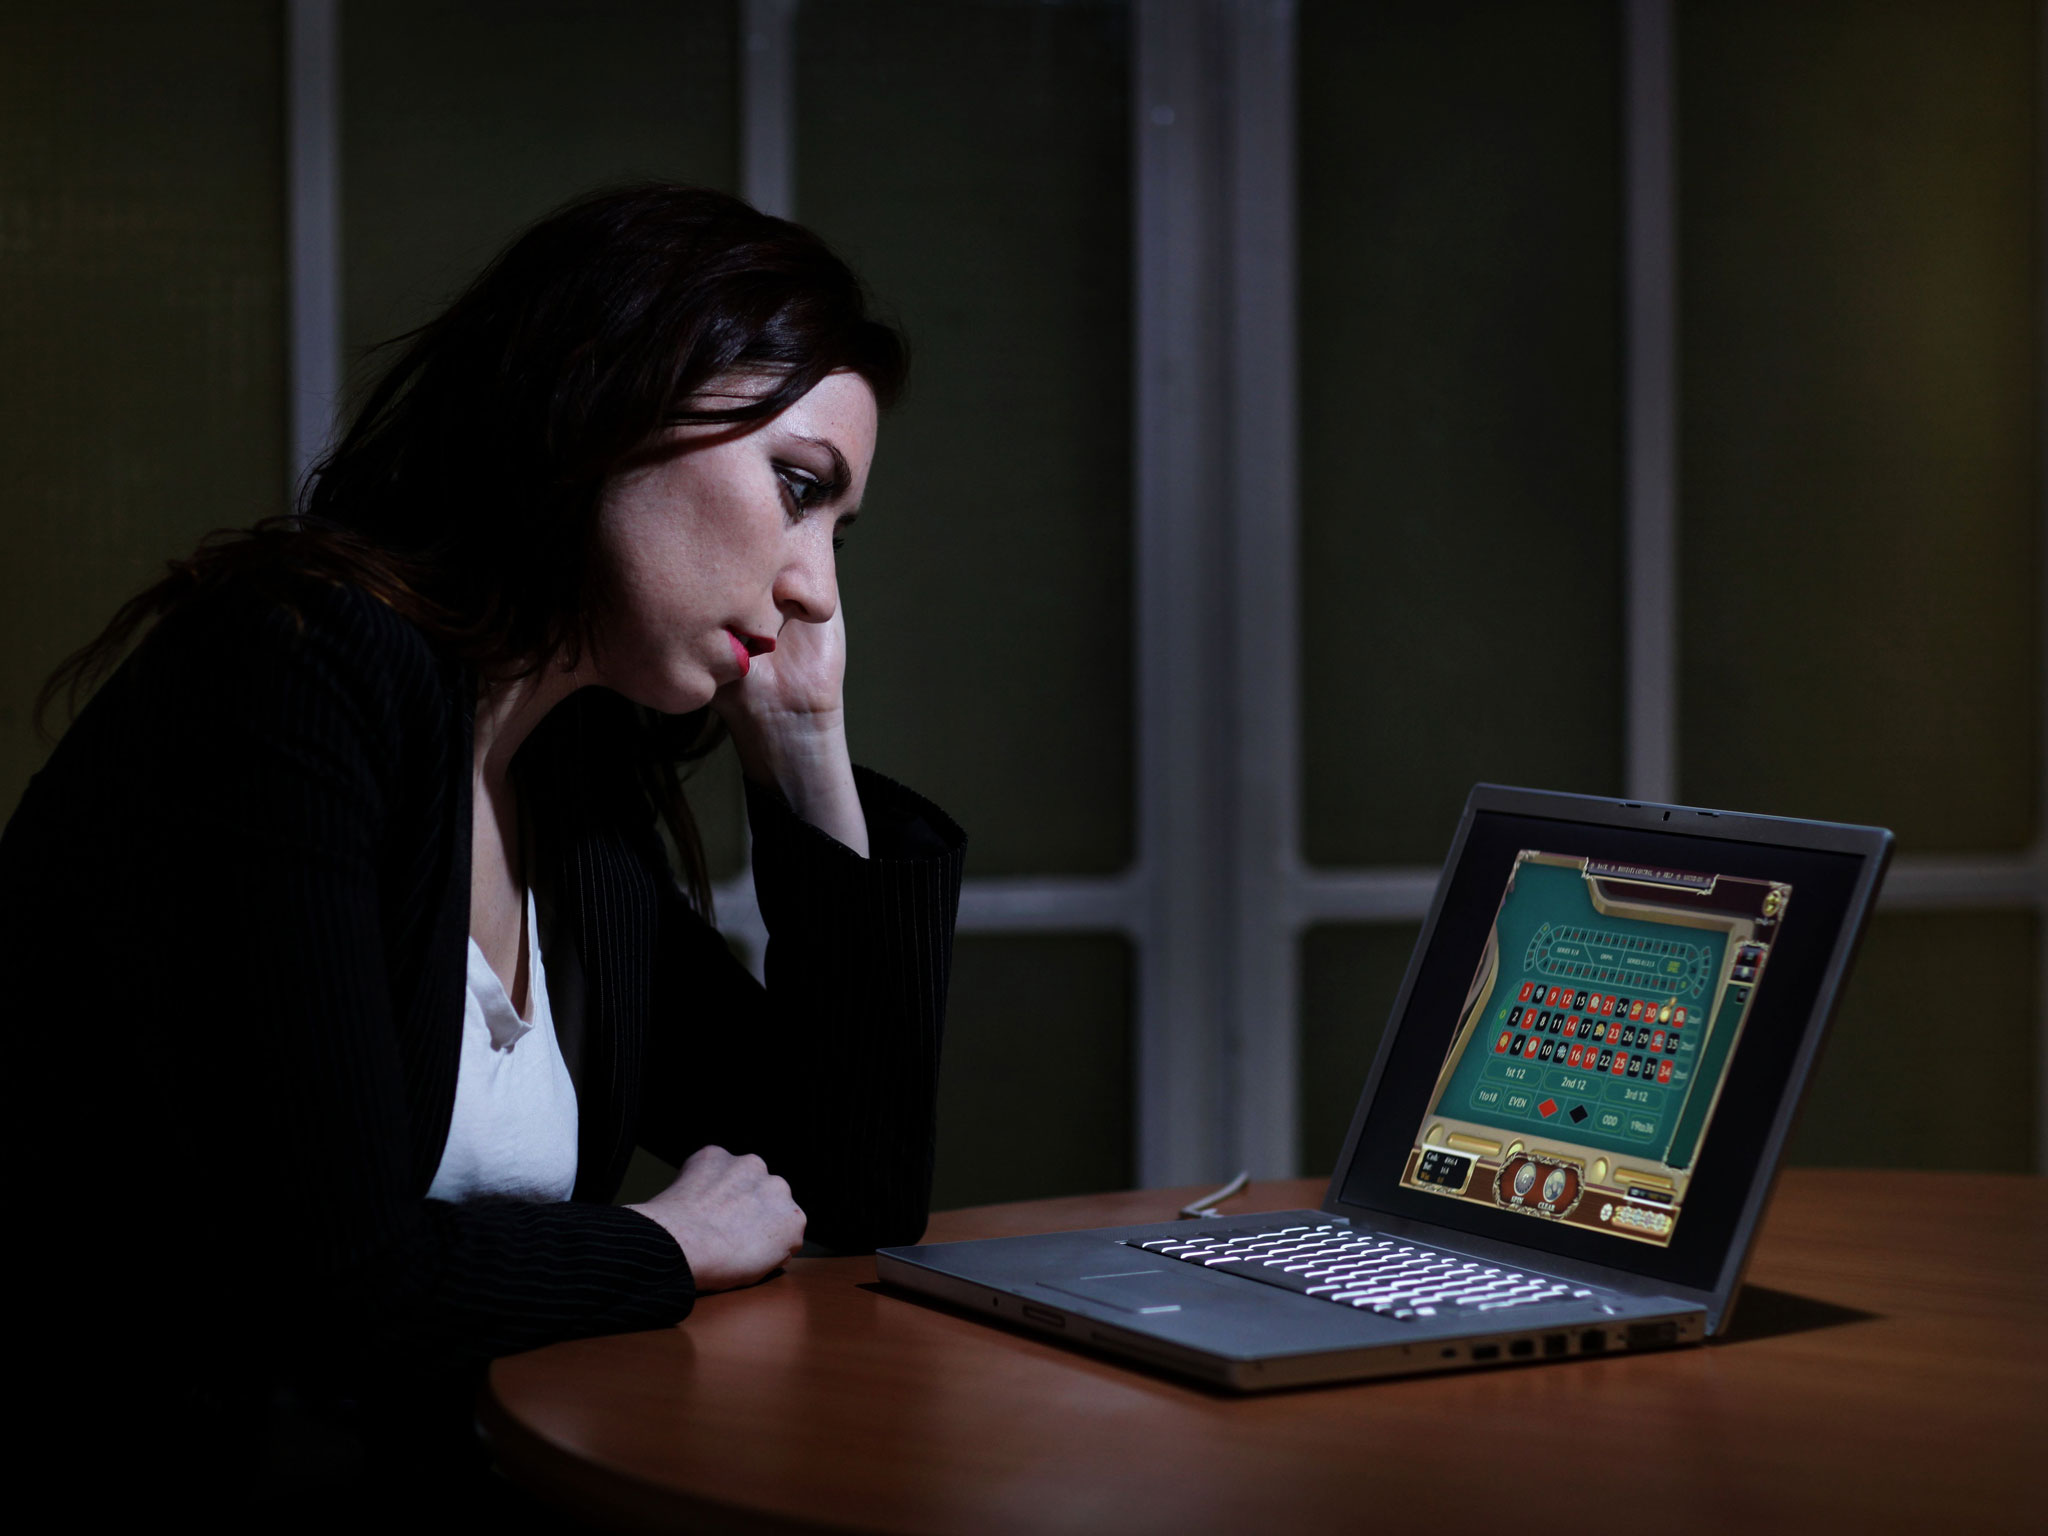 Woman gambling on laptop online at a table